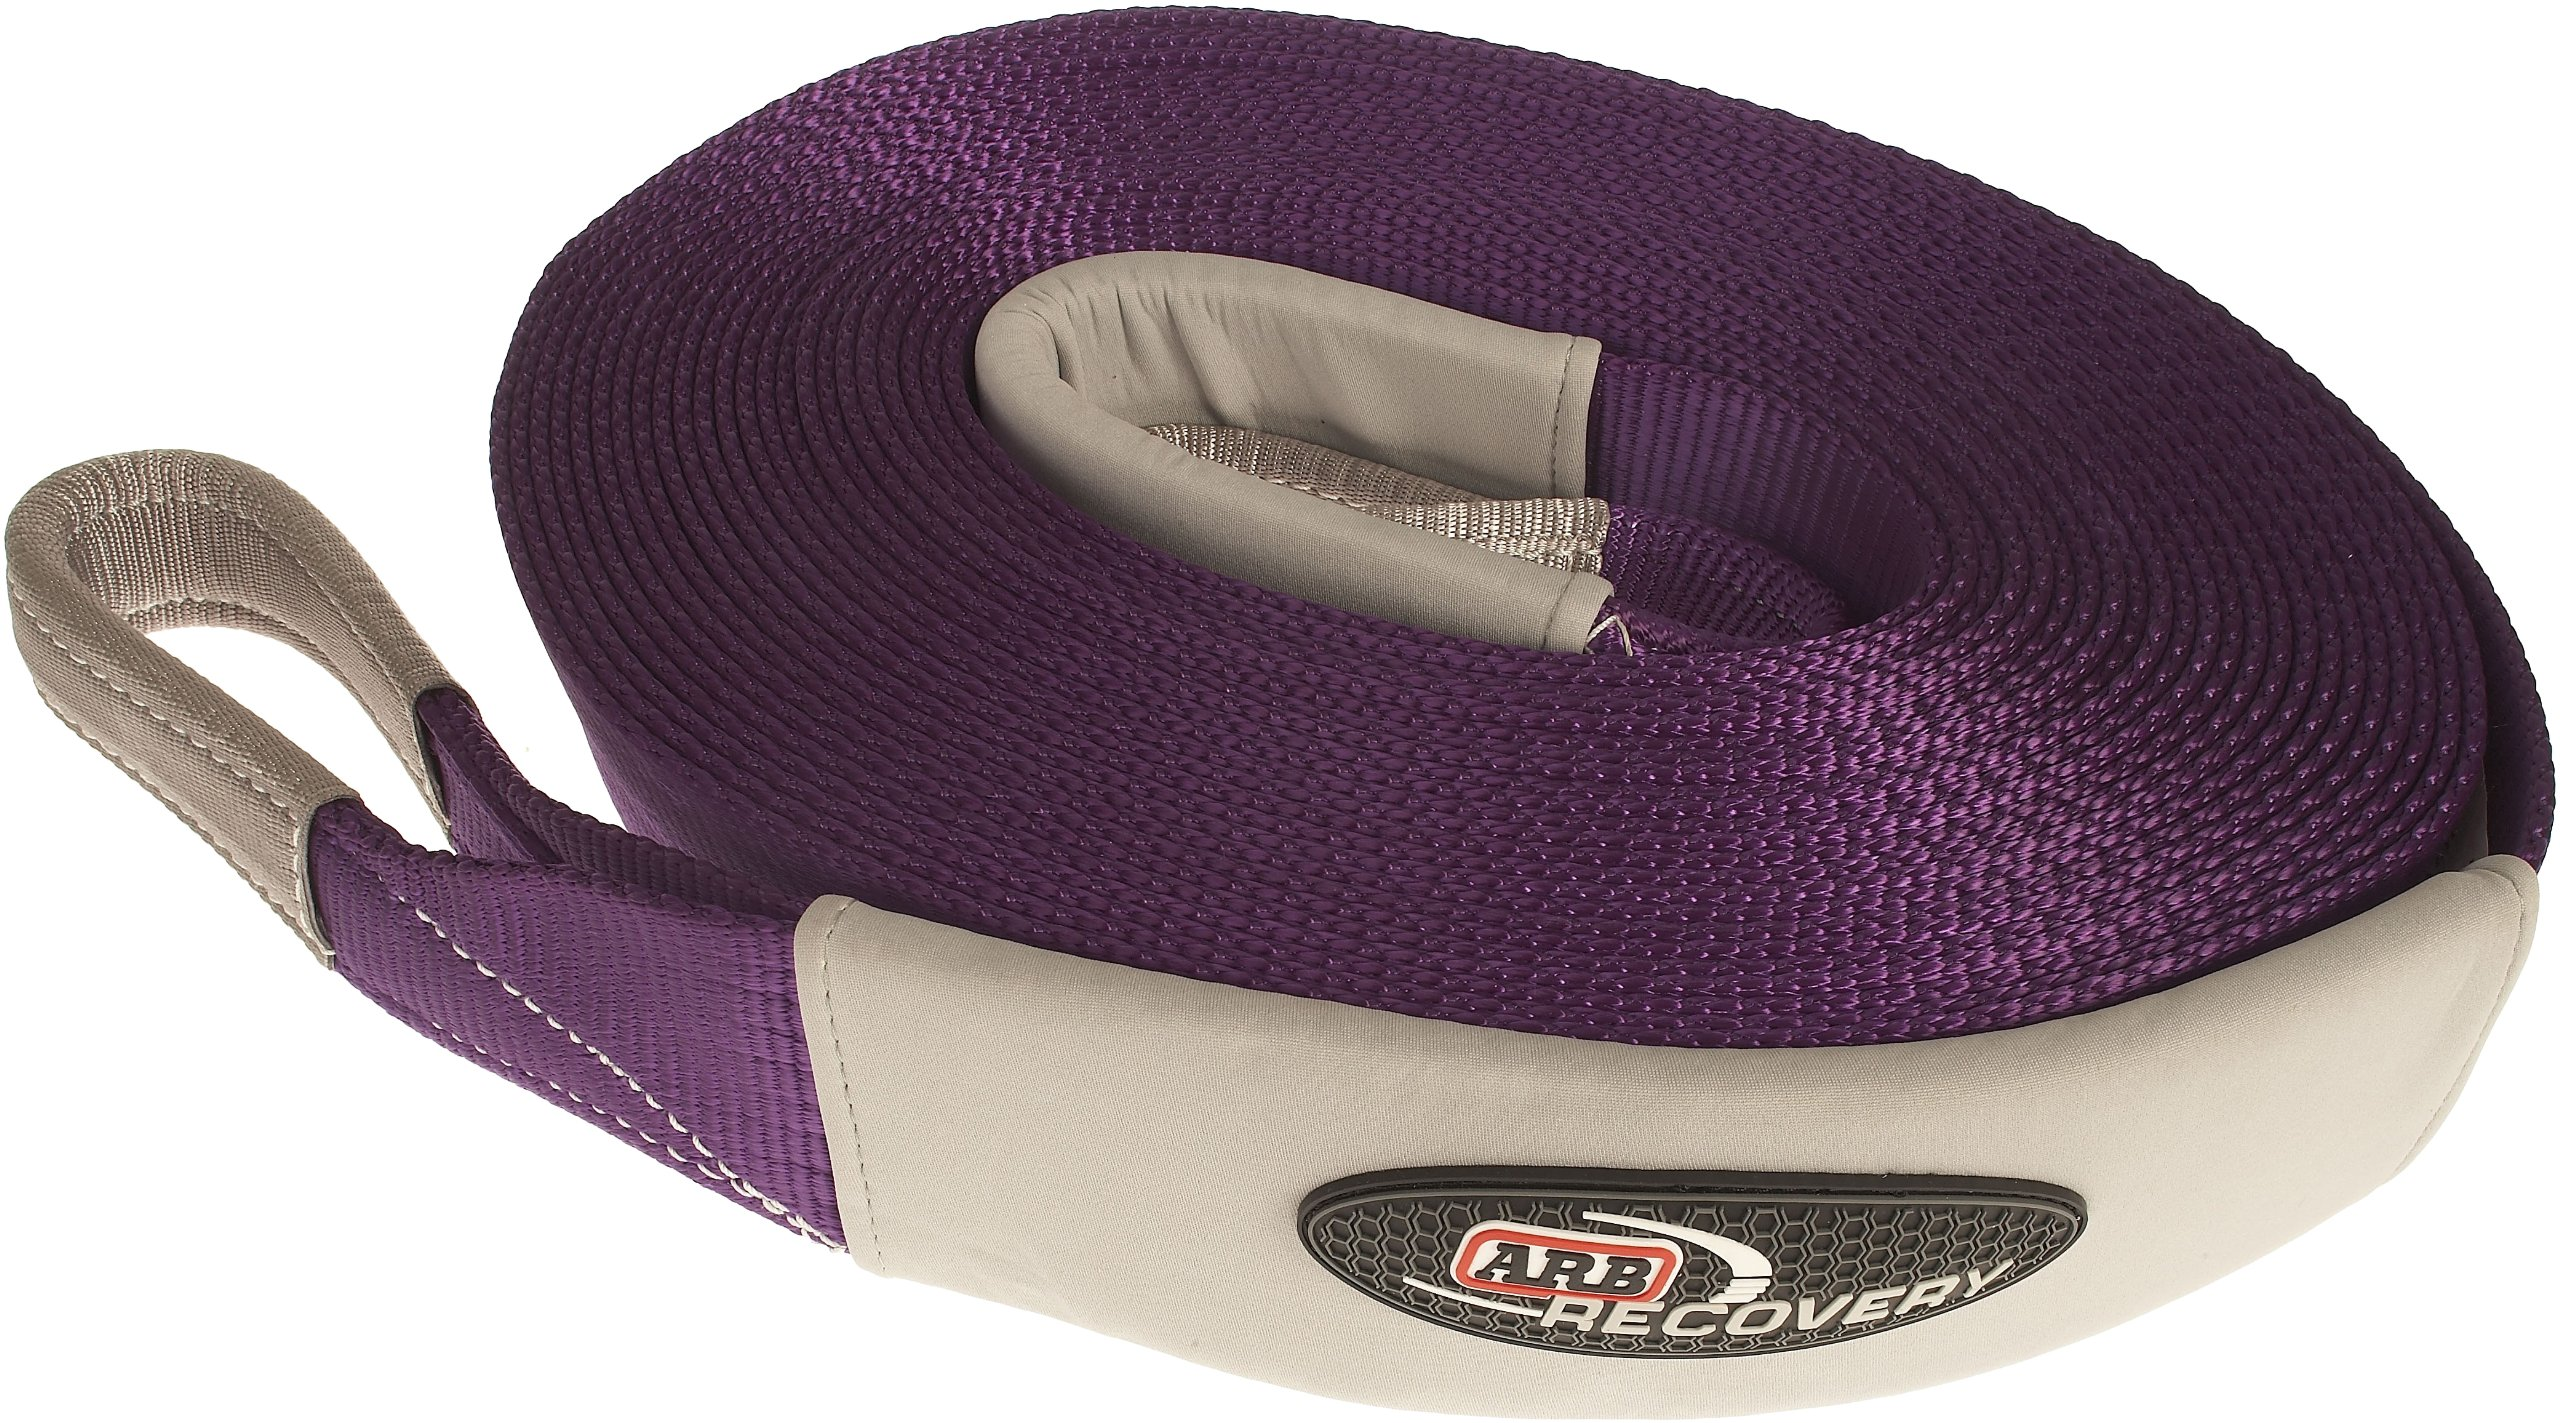 ARB ARB725LB 3-1/8'' x 60' Winch Extension Strap - 17600 lbs Capacity